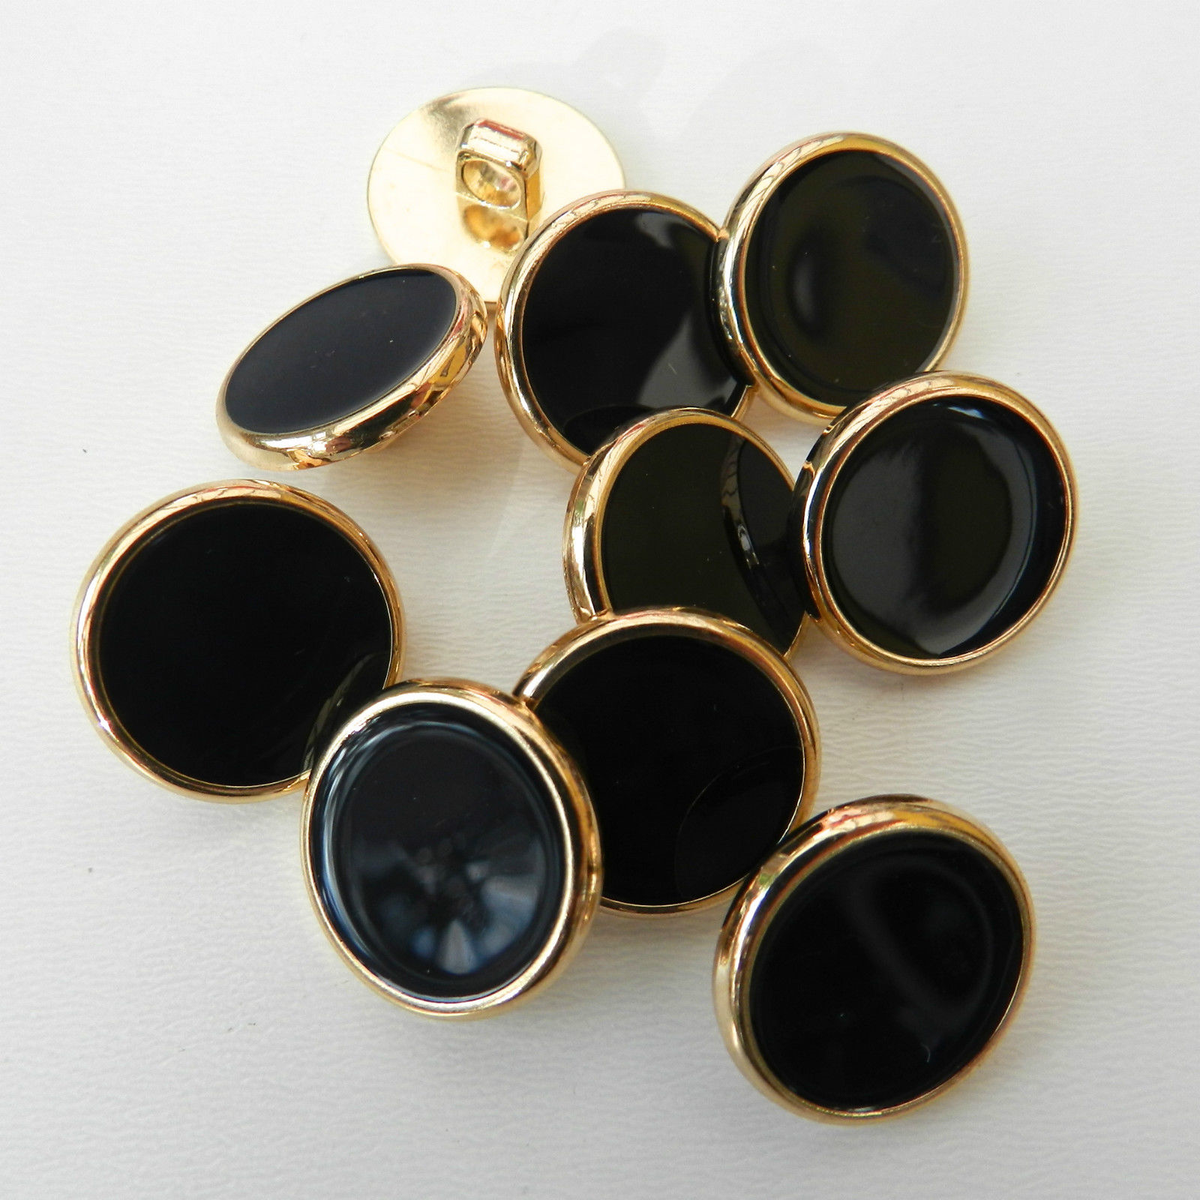 Dress Shirt Buttons, Navy Blue, with gold colour rim